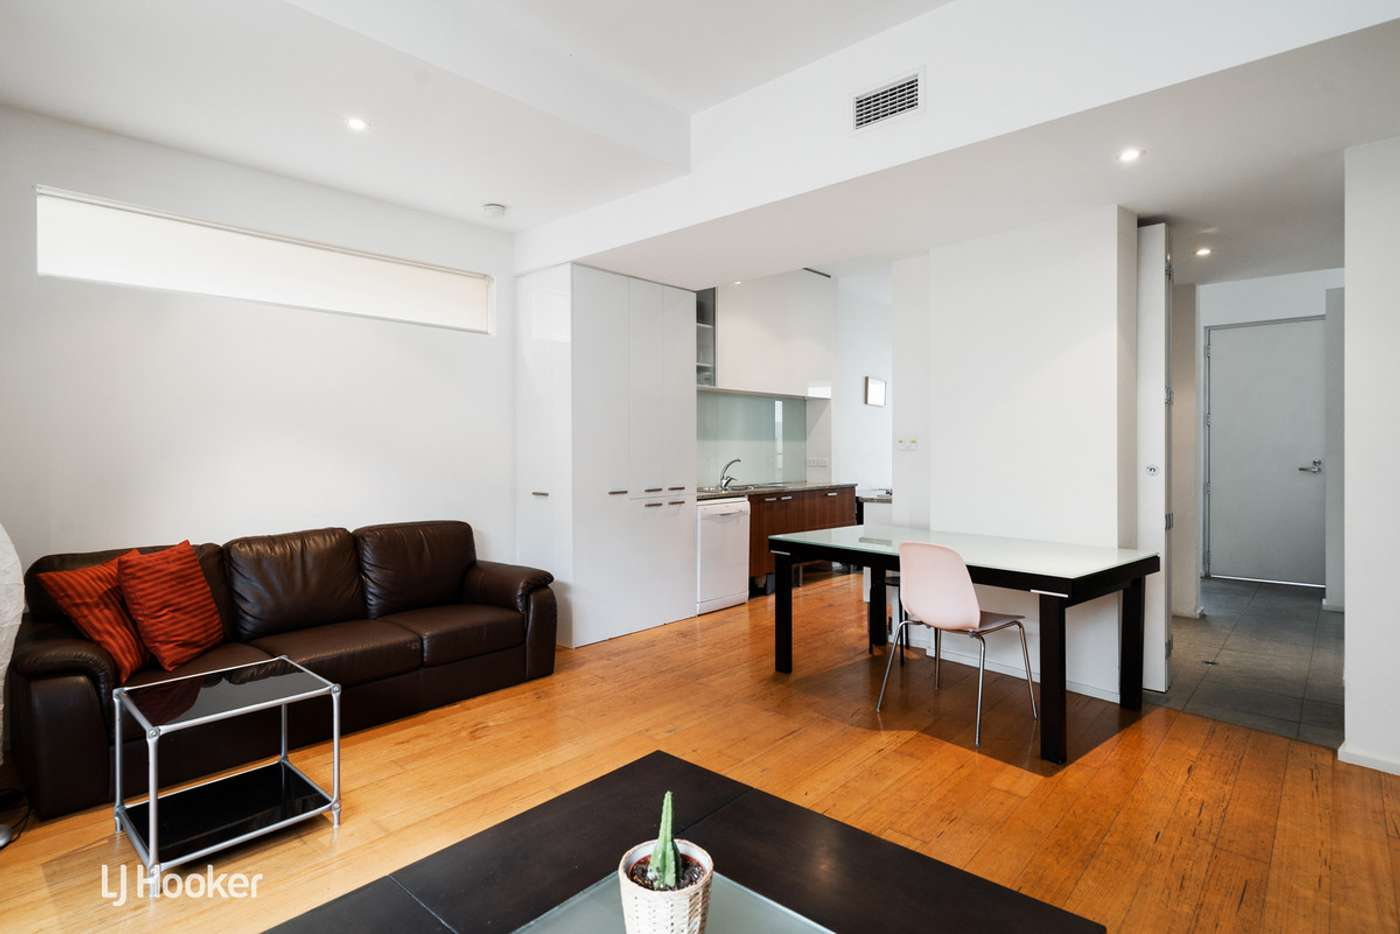 Fifth view of Homely house listing, 53 Elizabeth Street, Adelaide SA 5000